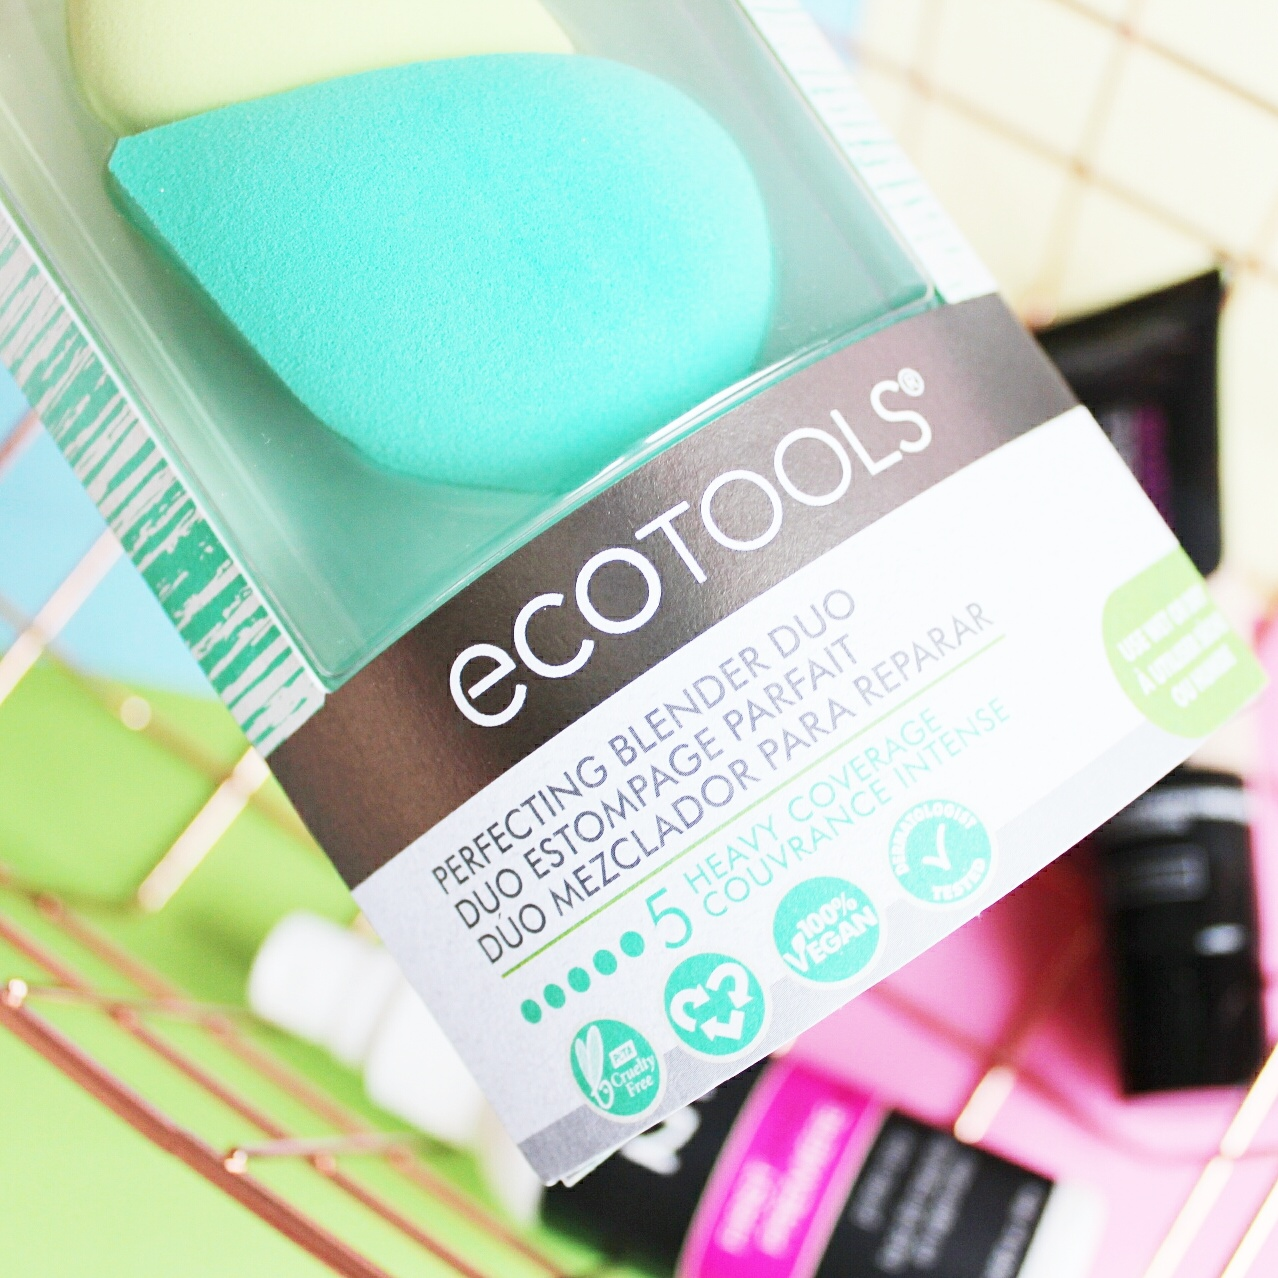 Eco Tools Perfecting Blender Duo | A Beauty Blender Dupe